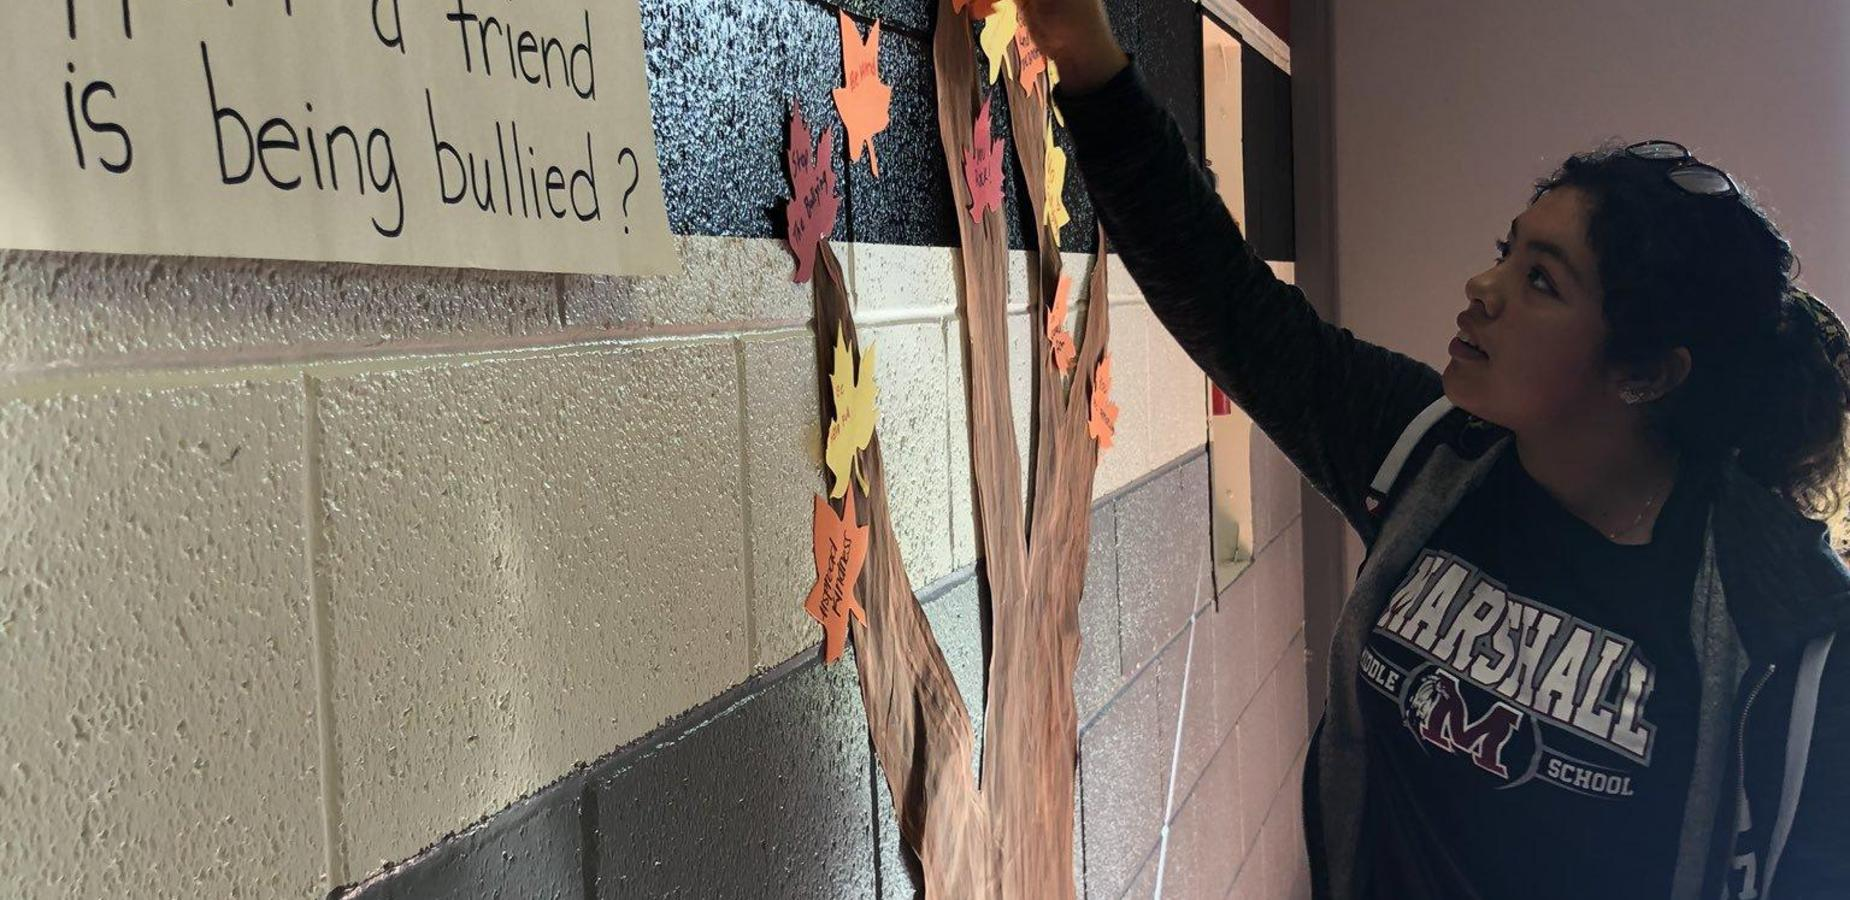 Unity Tree - Marshall Middle School students had the opportunity to create a leaf with positive messages and advice to stand up against bullying for our unity tree! #AntiBullyingWeek #asca #schoolcounseling #ChooseKindness #proud2be http://edl.io/n1125486